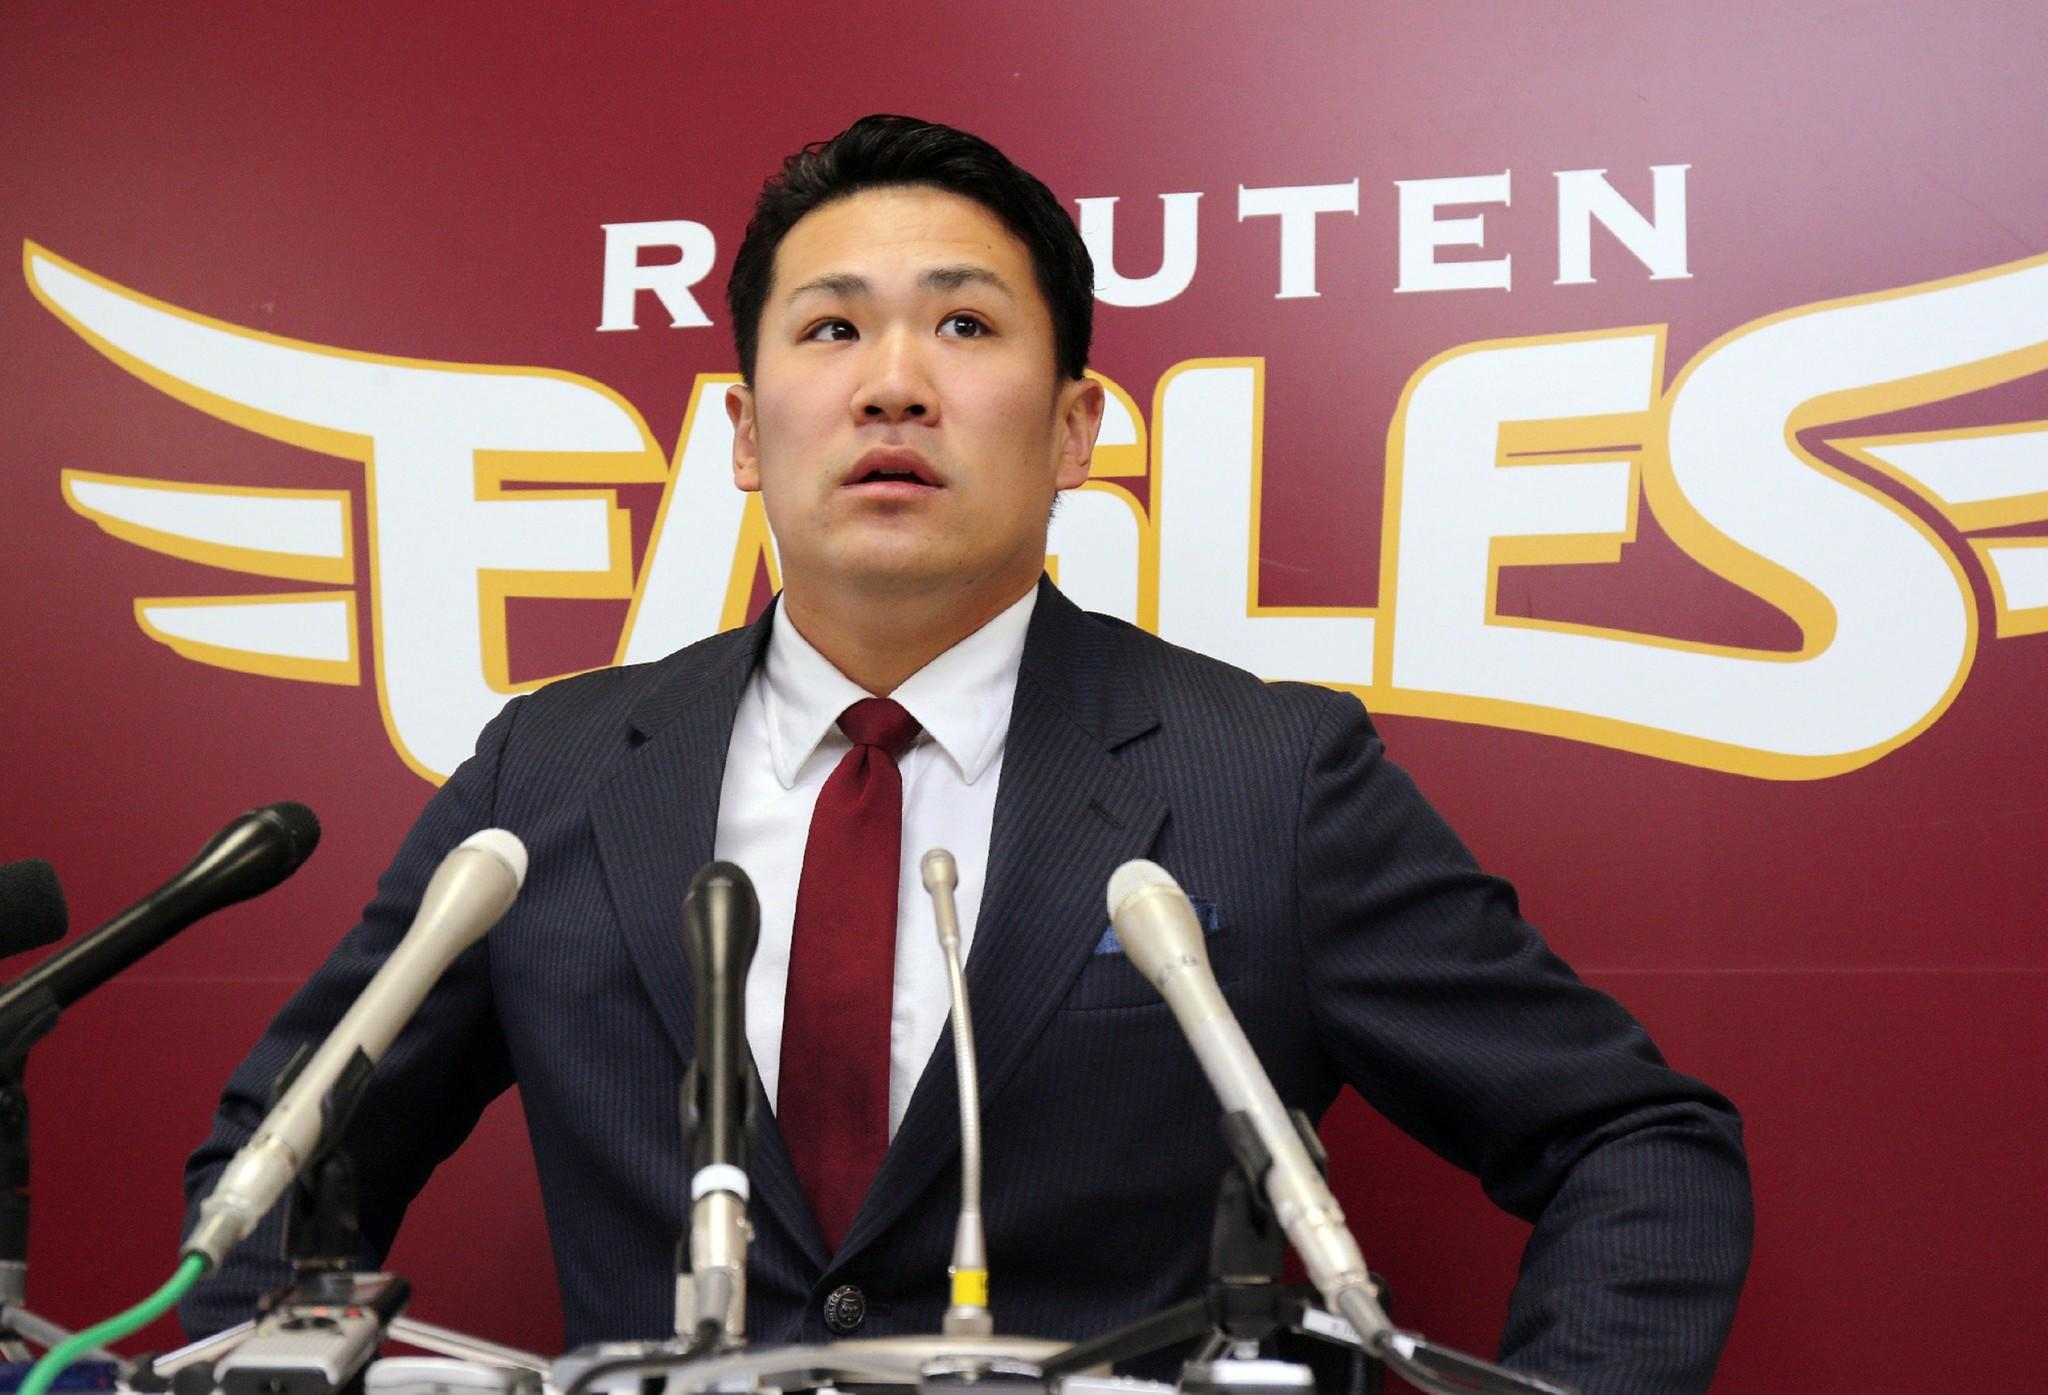 Japanese star pitcher Masahiro Tanaka of Rakuten Eagles speaks before the press after meeting with his team's president.